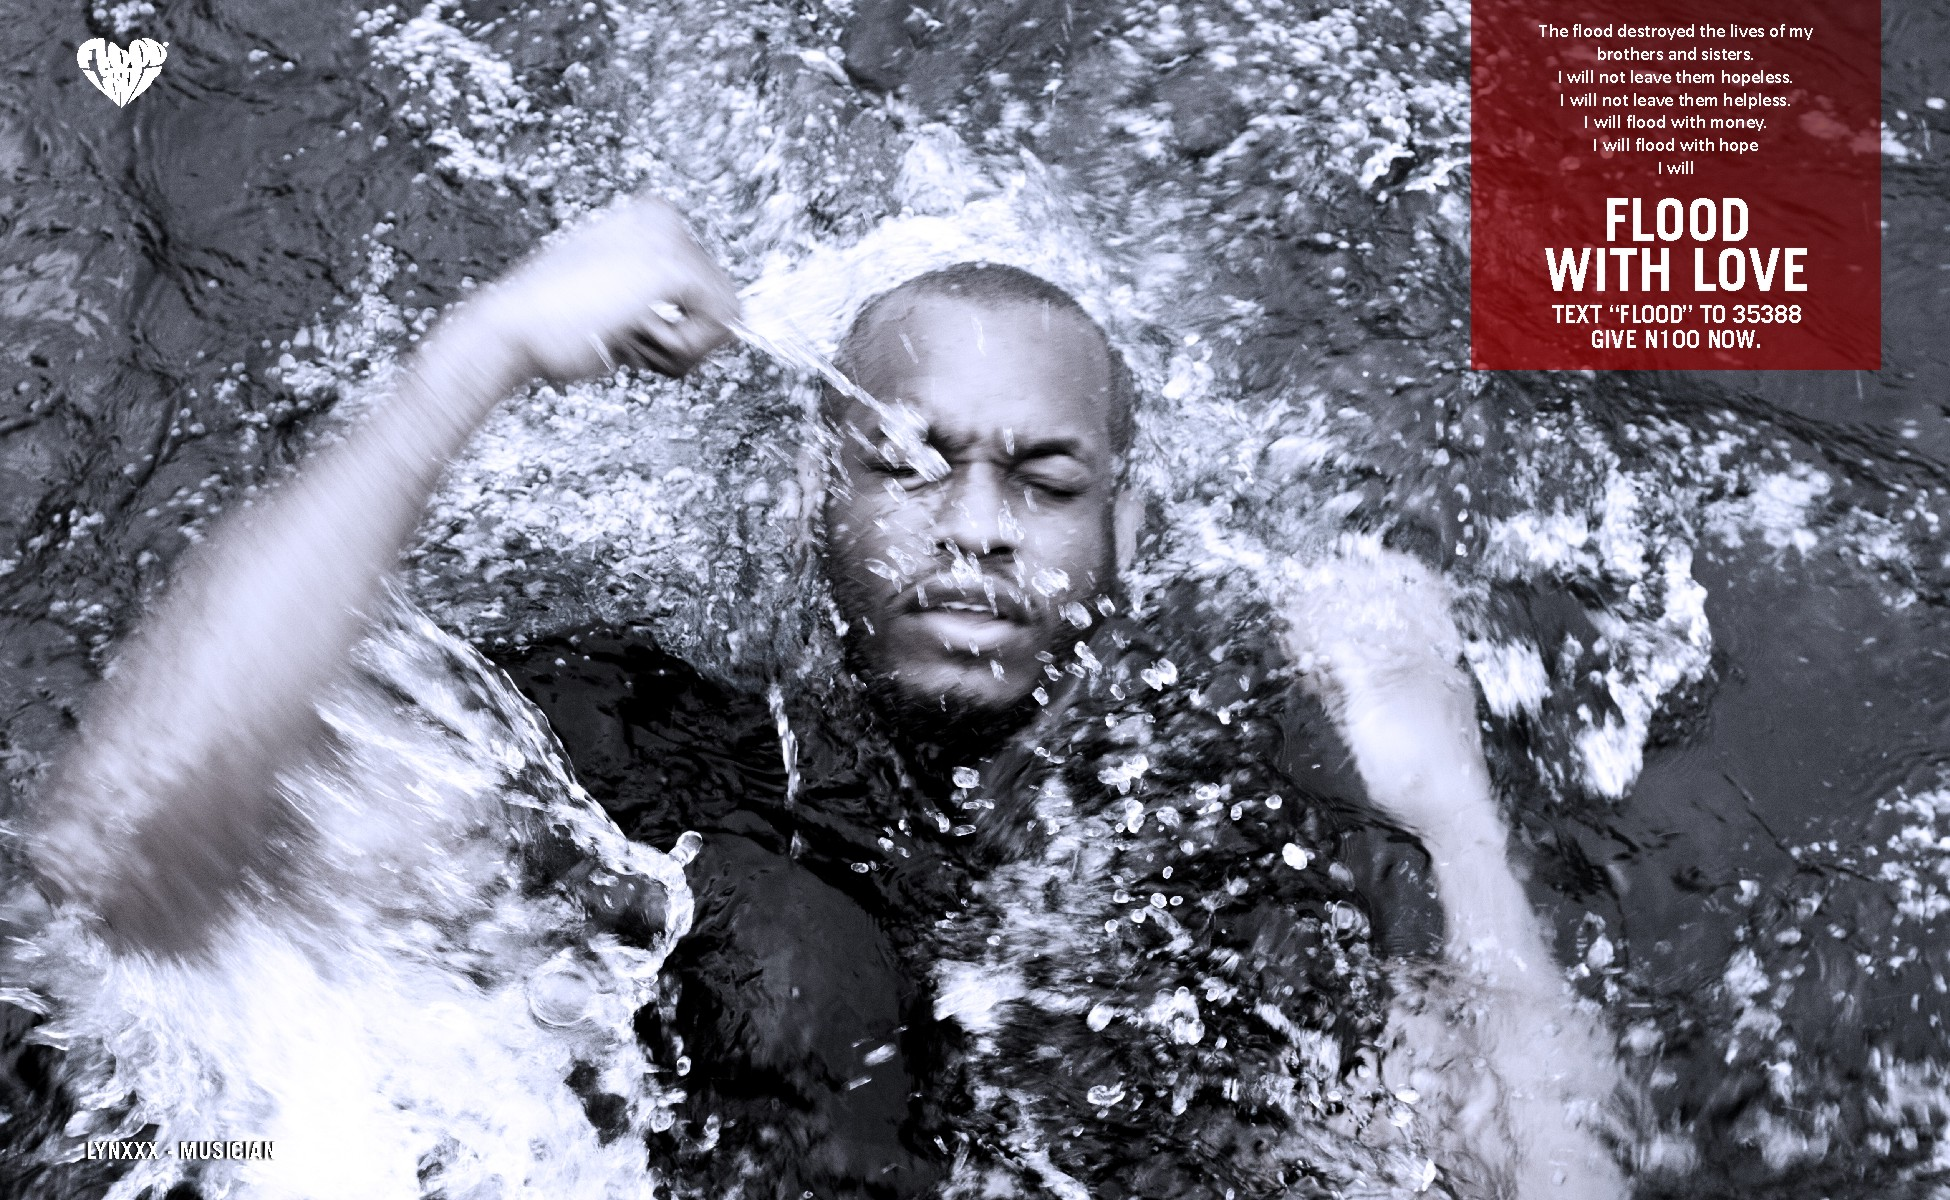 FLOOD WITH LOVE CAMPAIGN (ONLINE)Lynxxx2